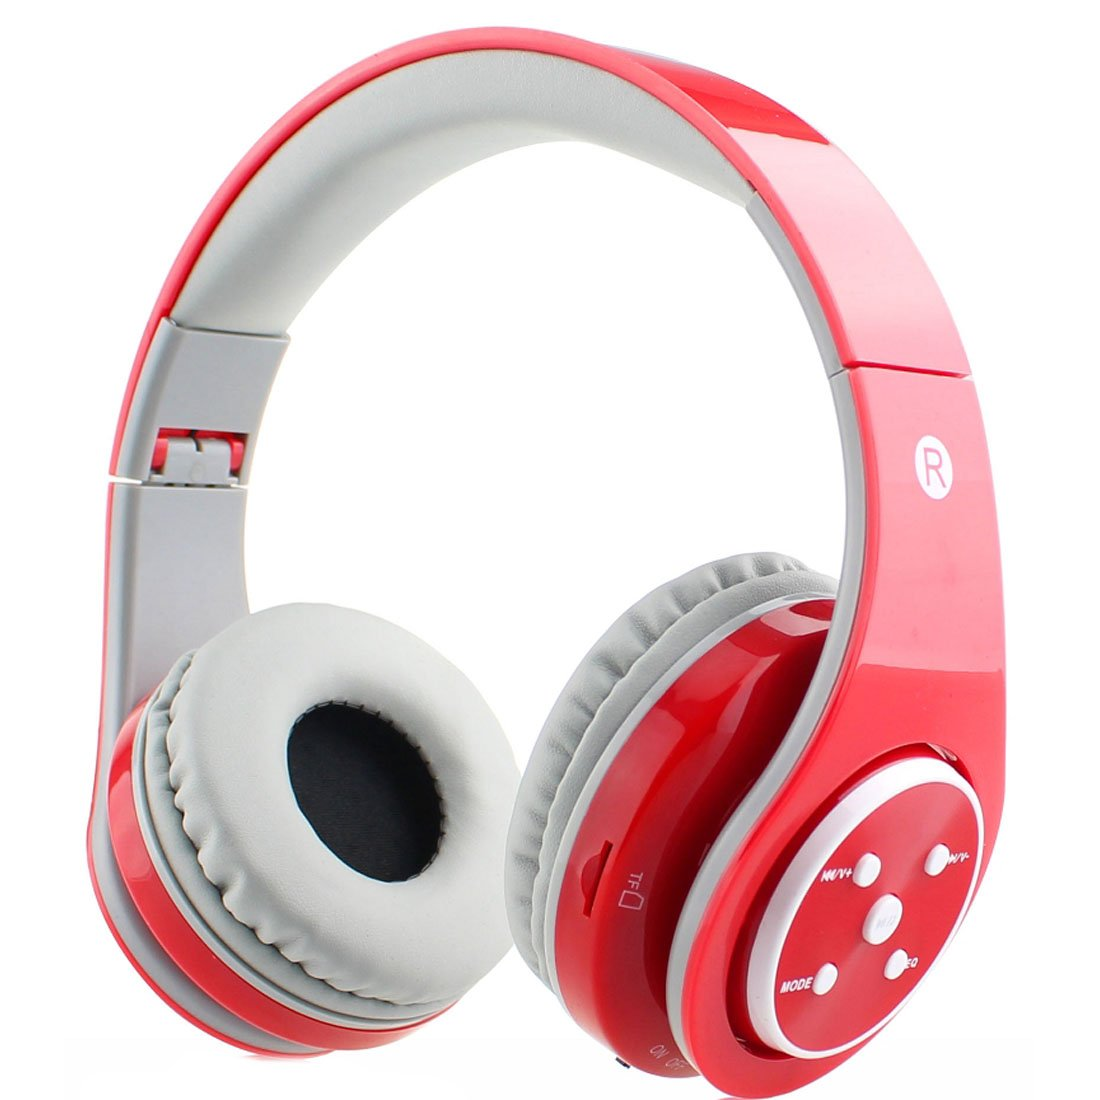 Mokata Bluetooth Headphone Wireless & AUX Foldable Rechargeable Headset Hi-fi Stereo for Smart Cell Phones & Tablets TV Multicolor B06 Red